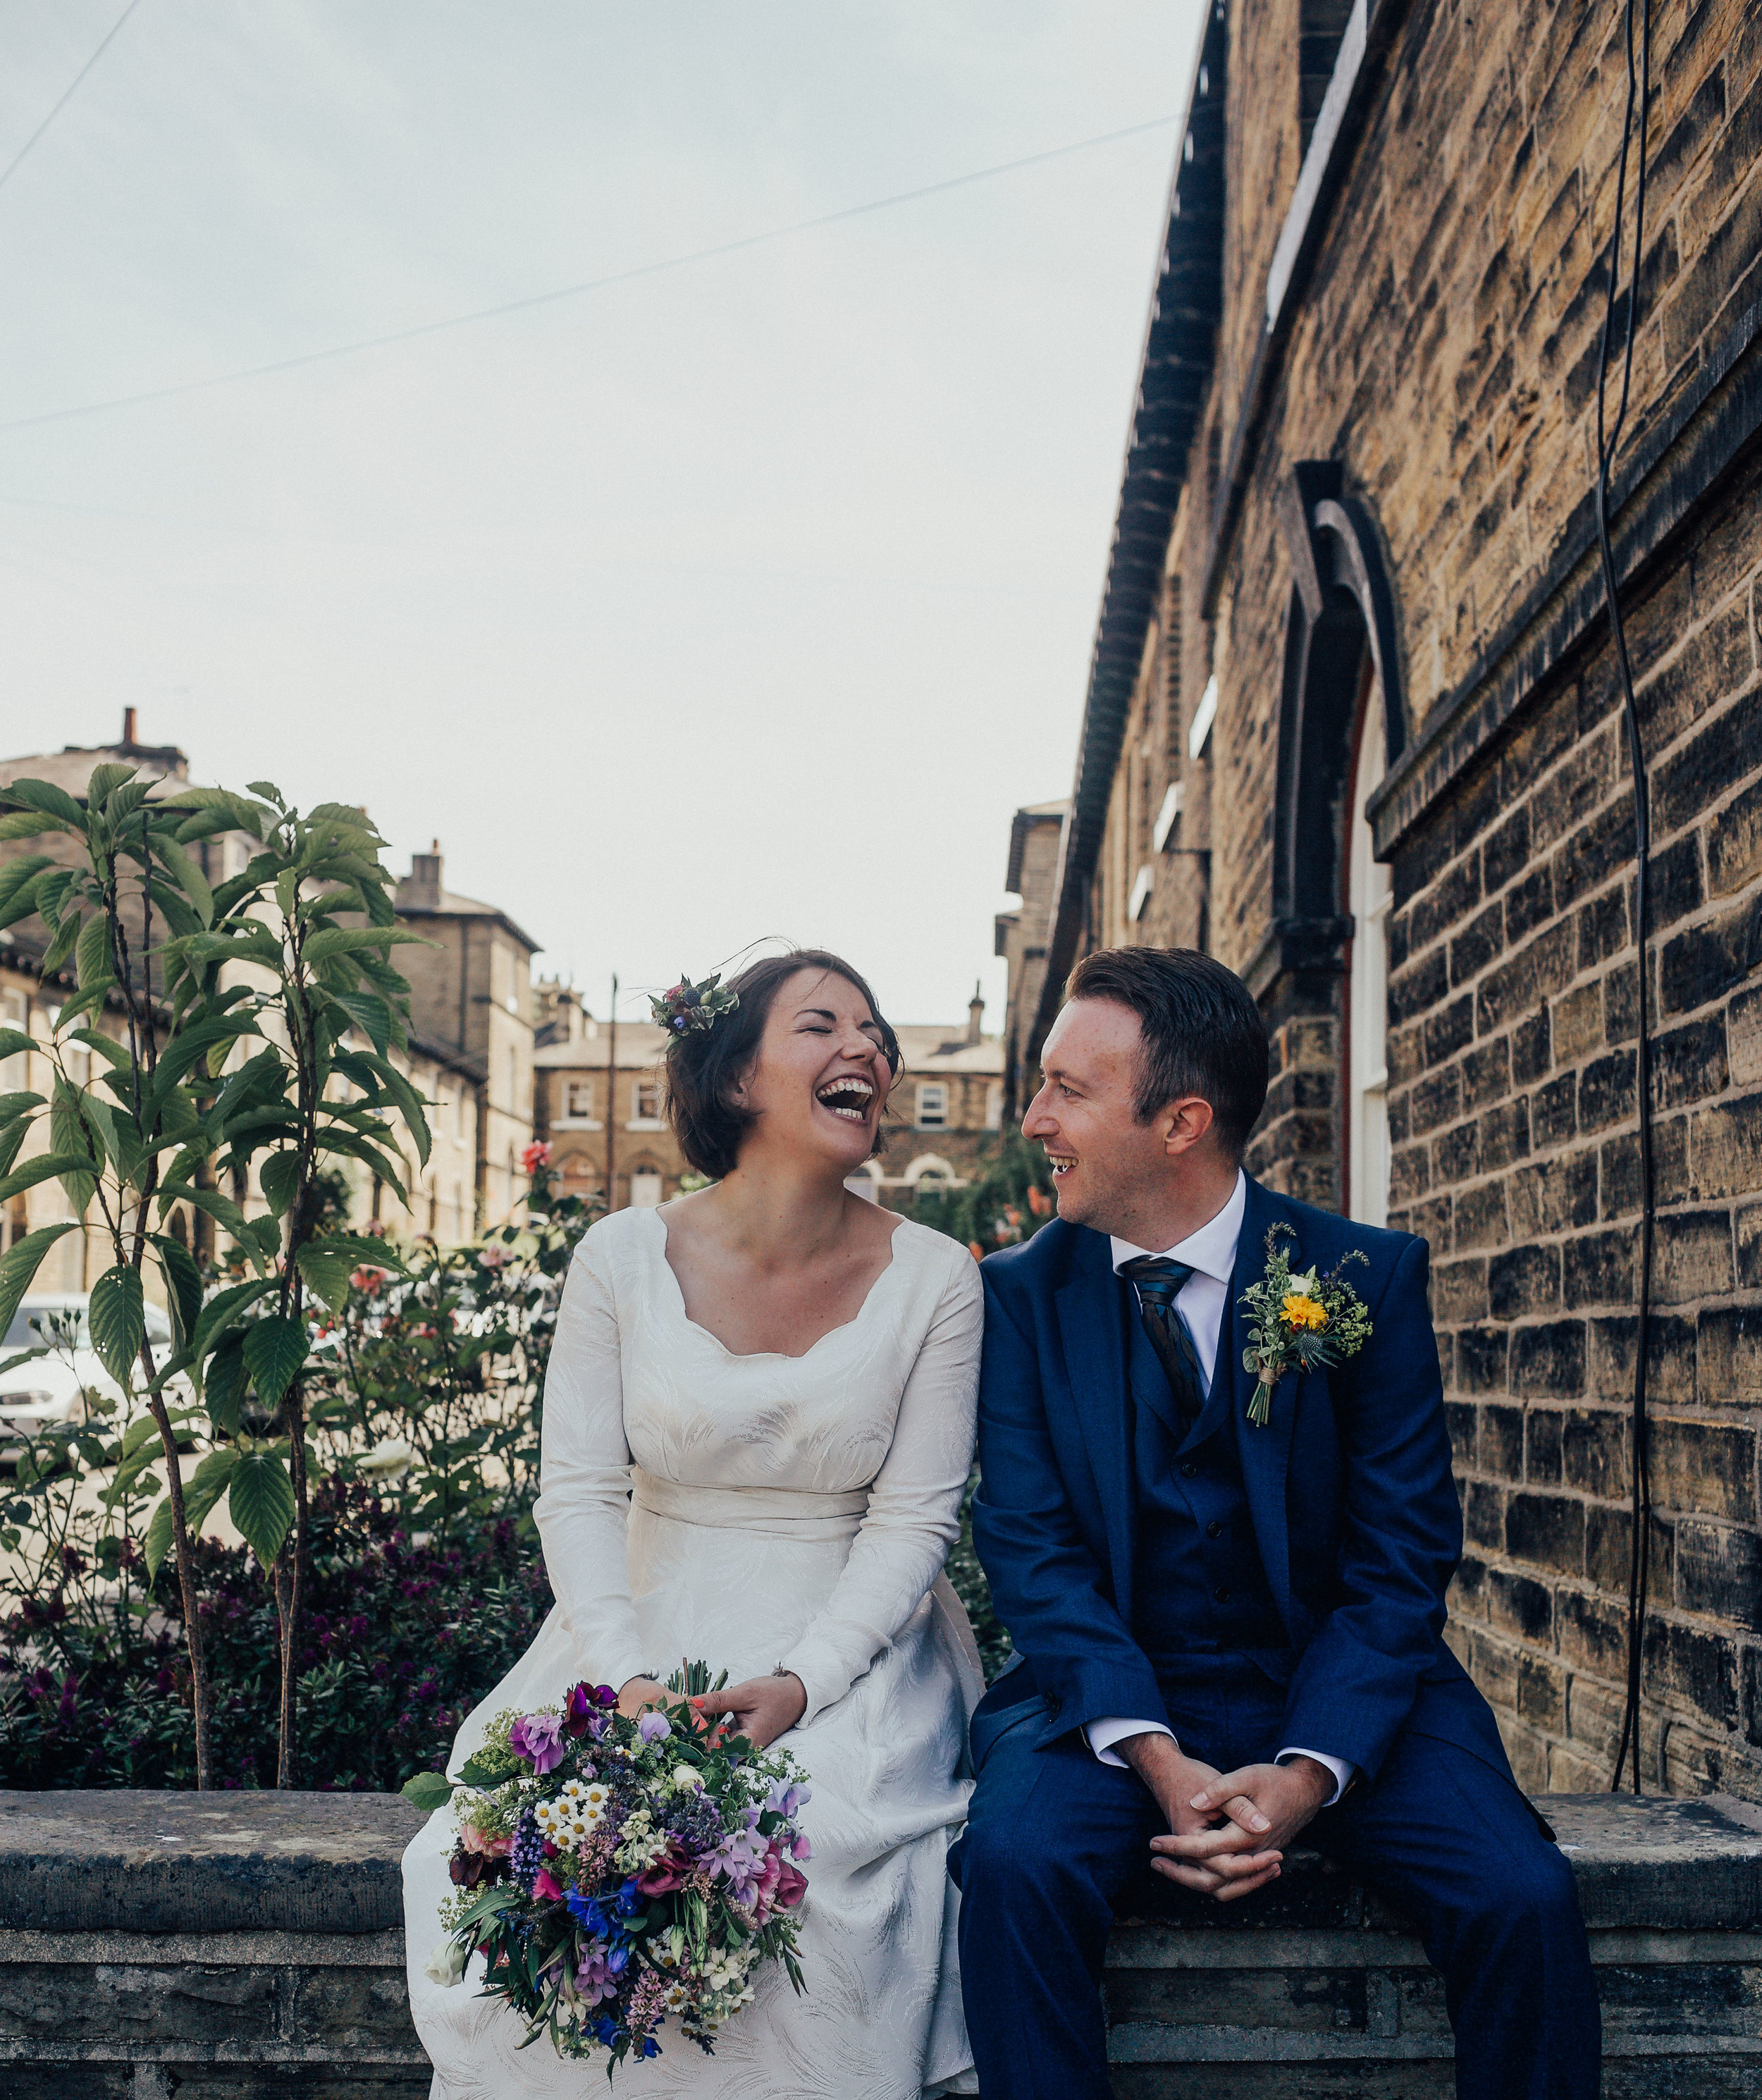 VICTORIA_HALL_SALTAIRE_VINTAGE_YORKSHIRE_WEDDING_PJ_PHILLIPS_PHOTOGRAPHY_68.jpg